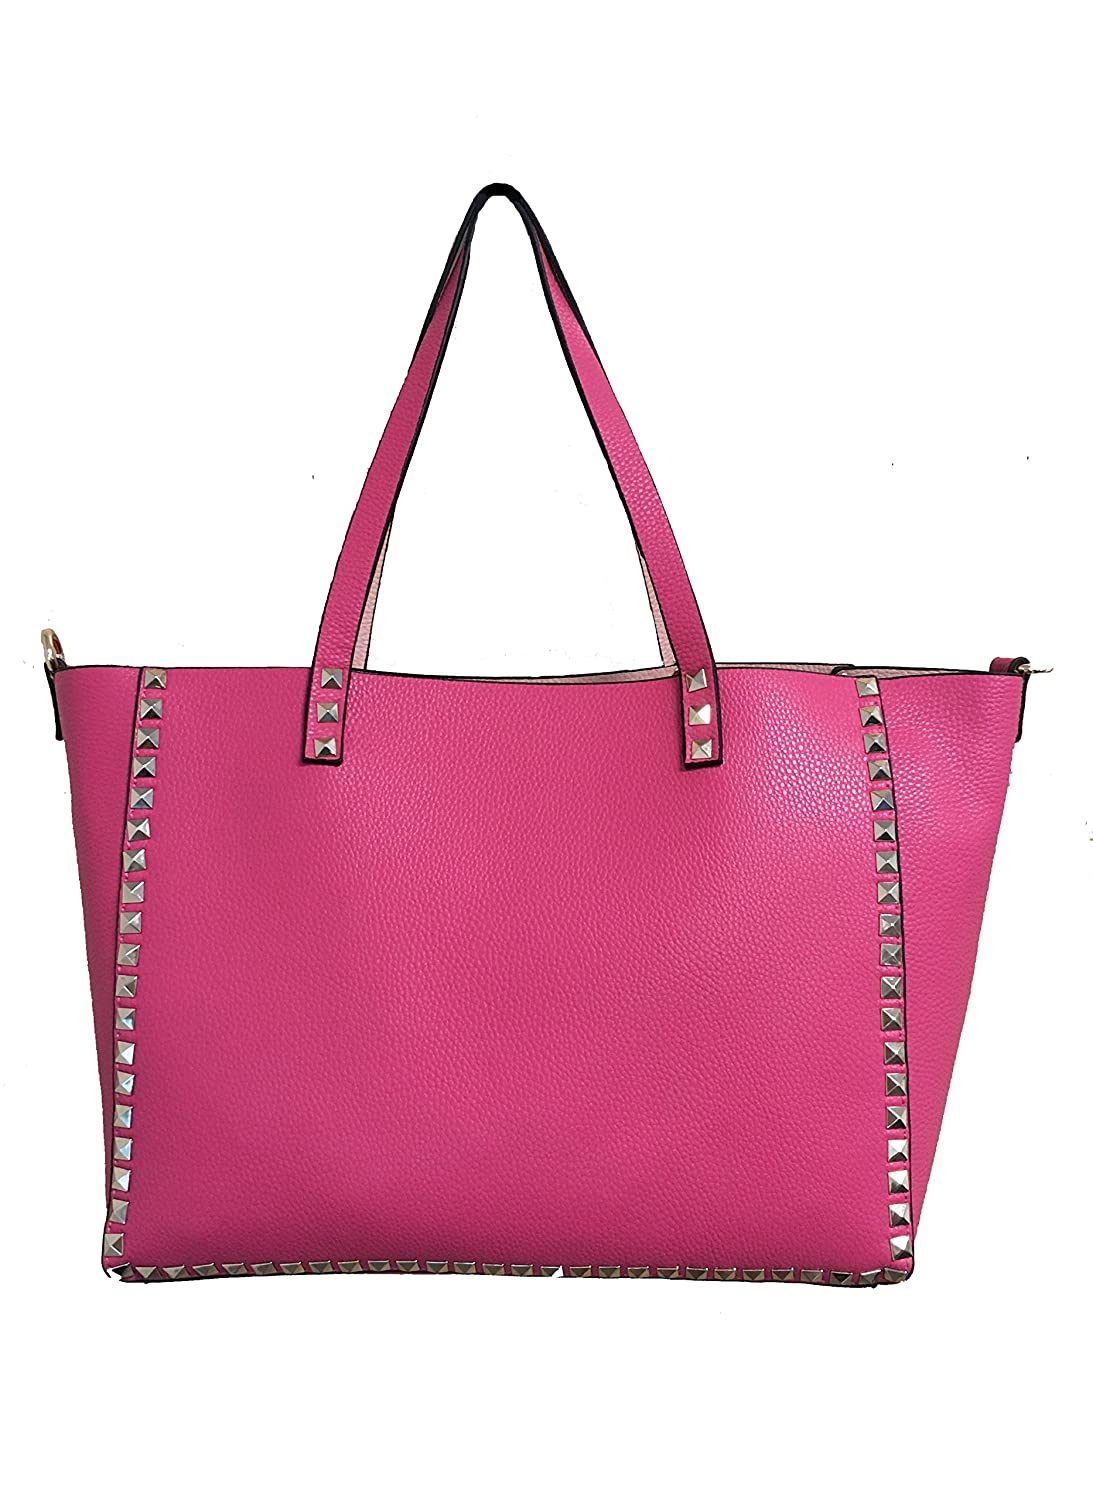 Women's Studded Rockstud Reversible Tote - 2 bags in 1